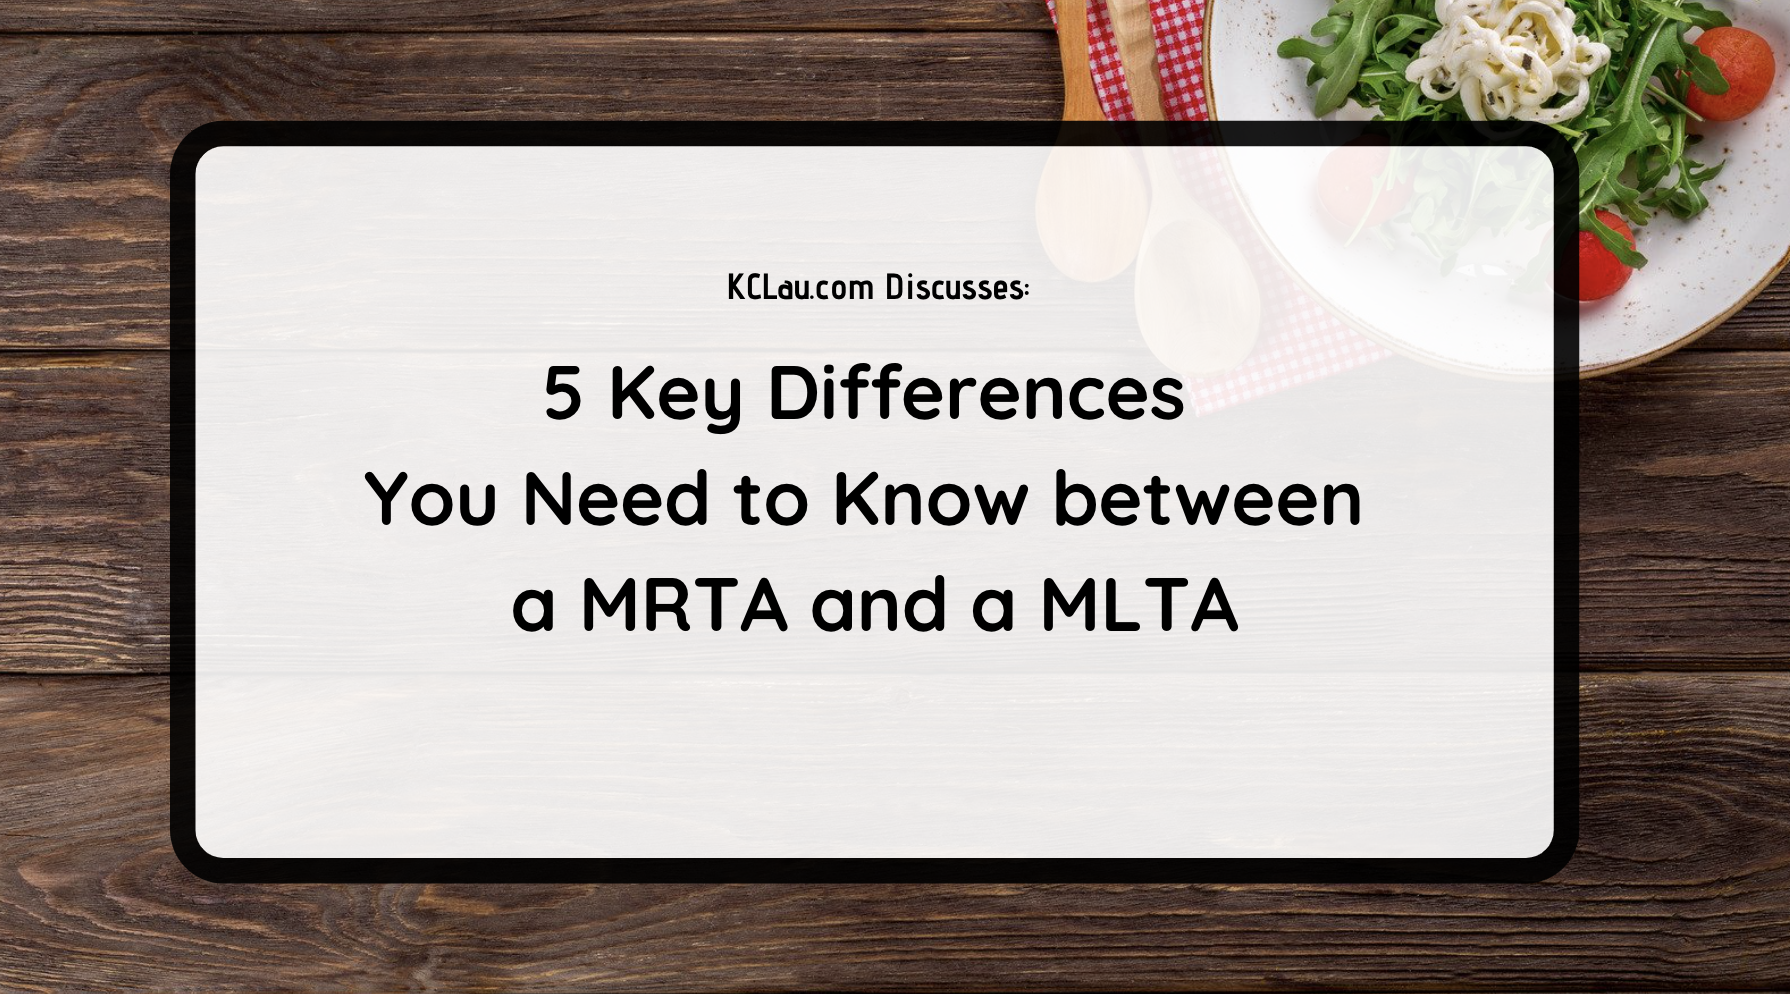 5 Key Differences You Need to Know between a MRTA and a MLTA